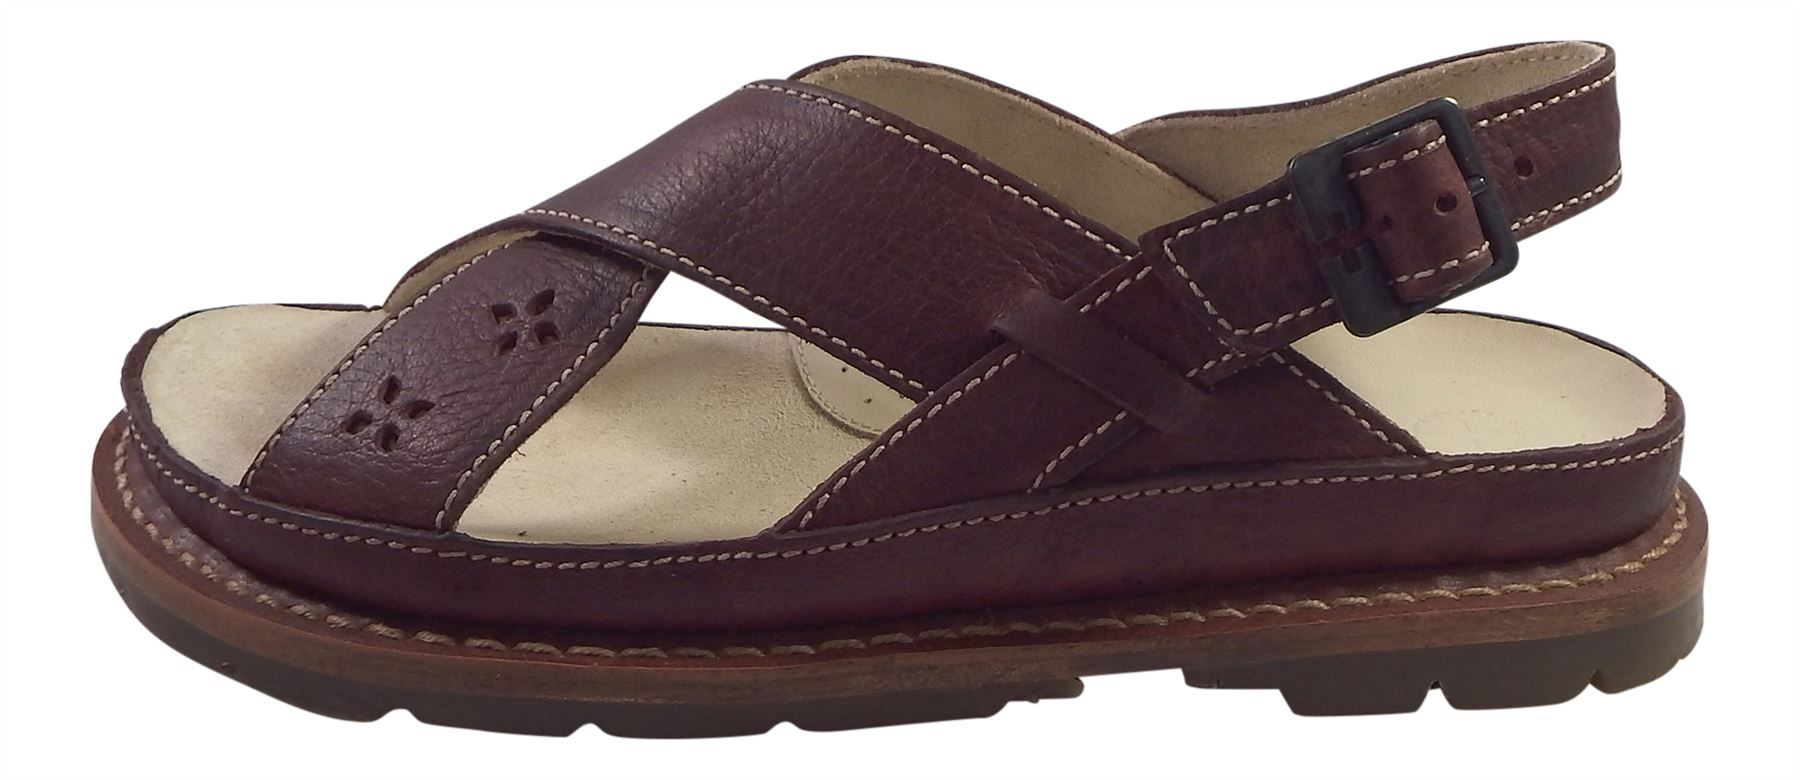 Dr Martens Ladies Shila Grizzly Leather Fisherman Style Style Style Strap Sandals f4d3f3